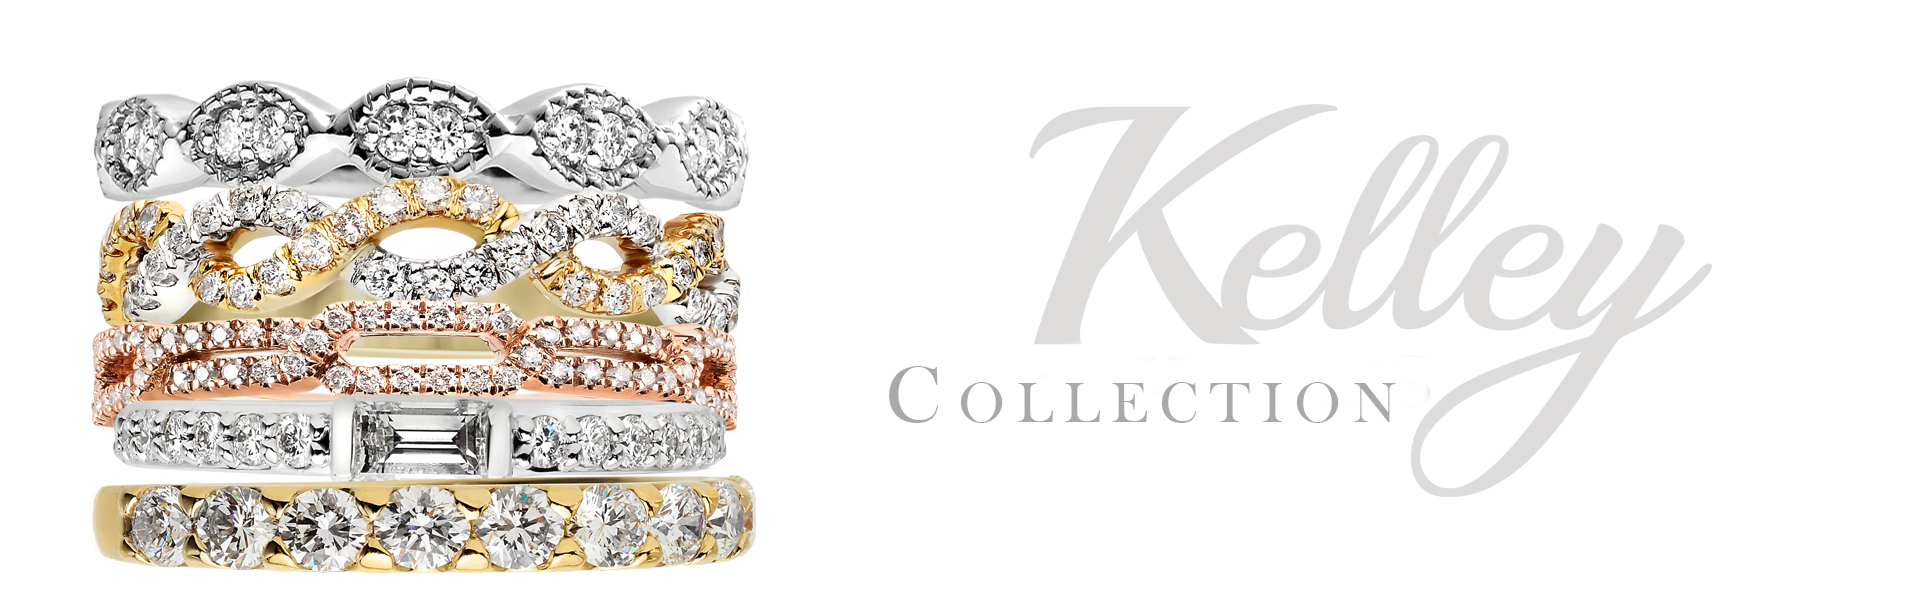 Kelley Jewelers Kelley Collection